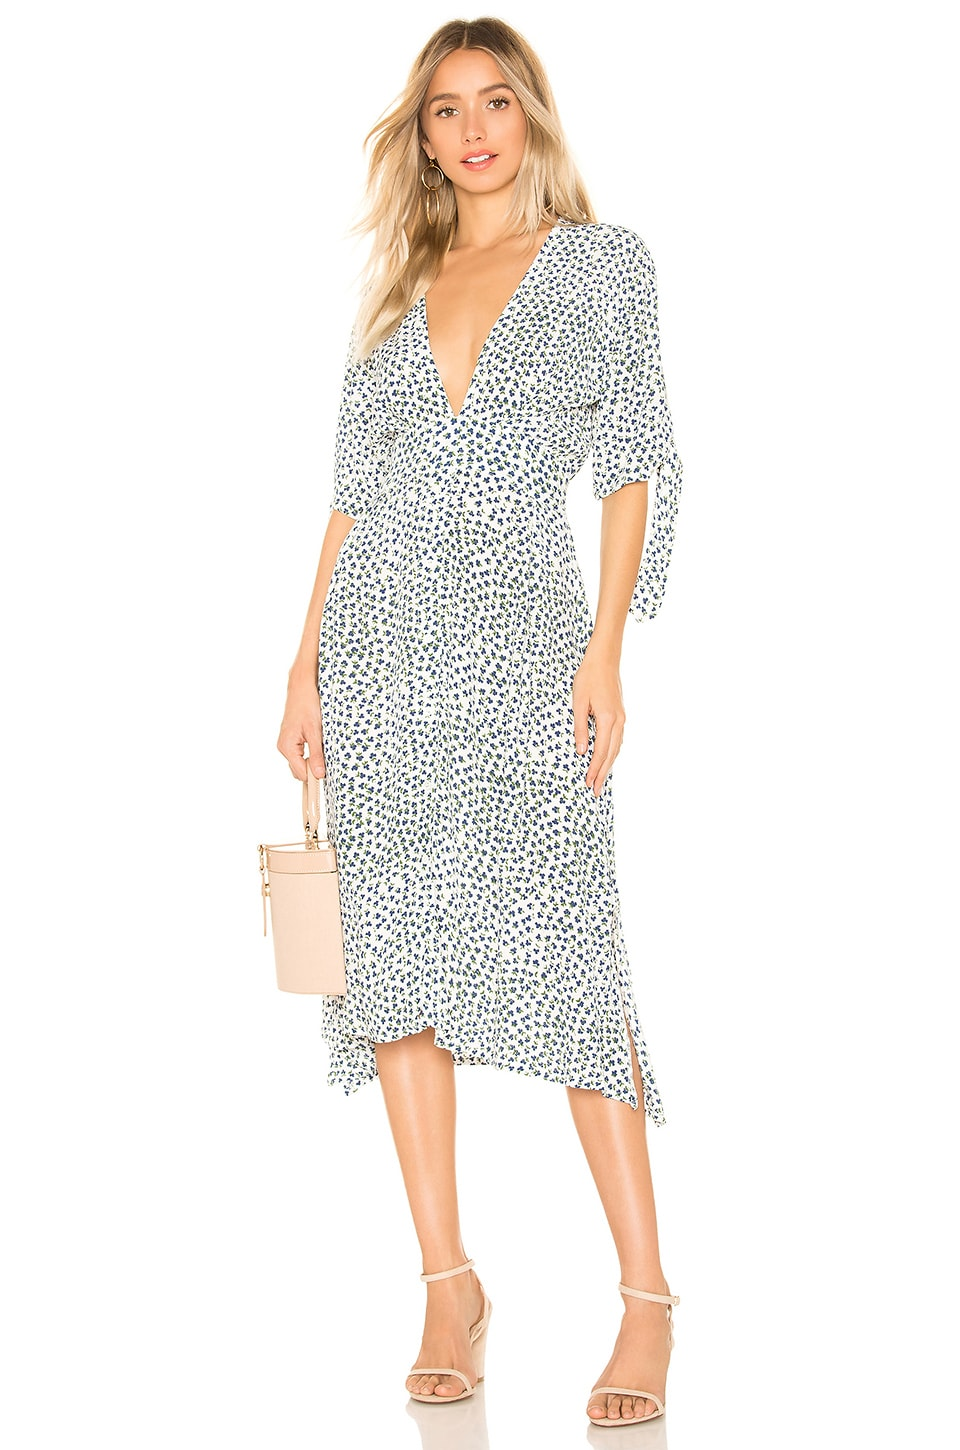 FAITHFULL THE BRAND Nina Midi Dress in White